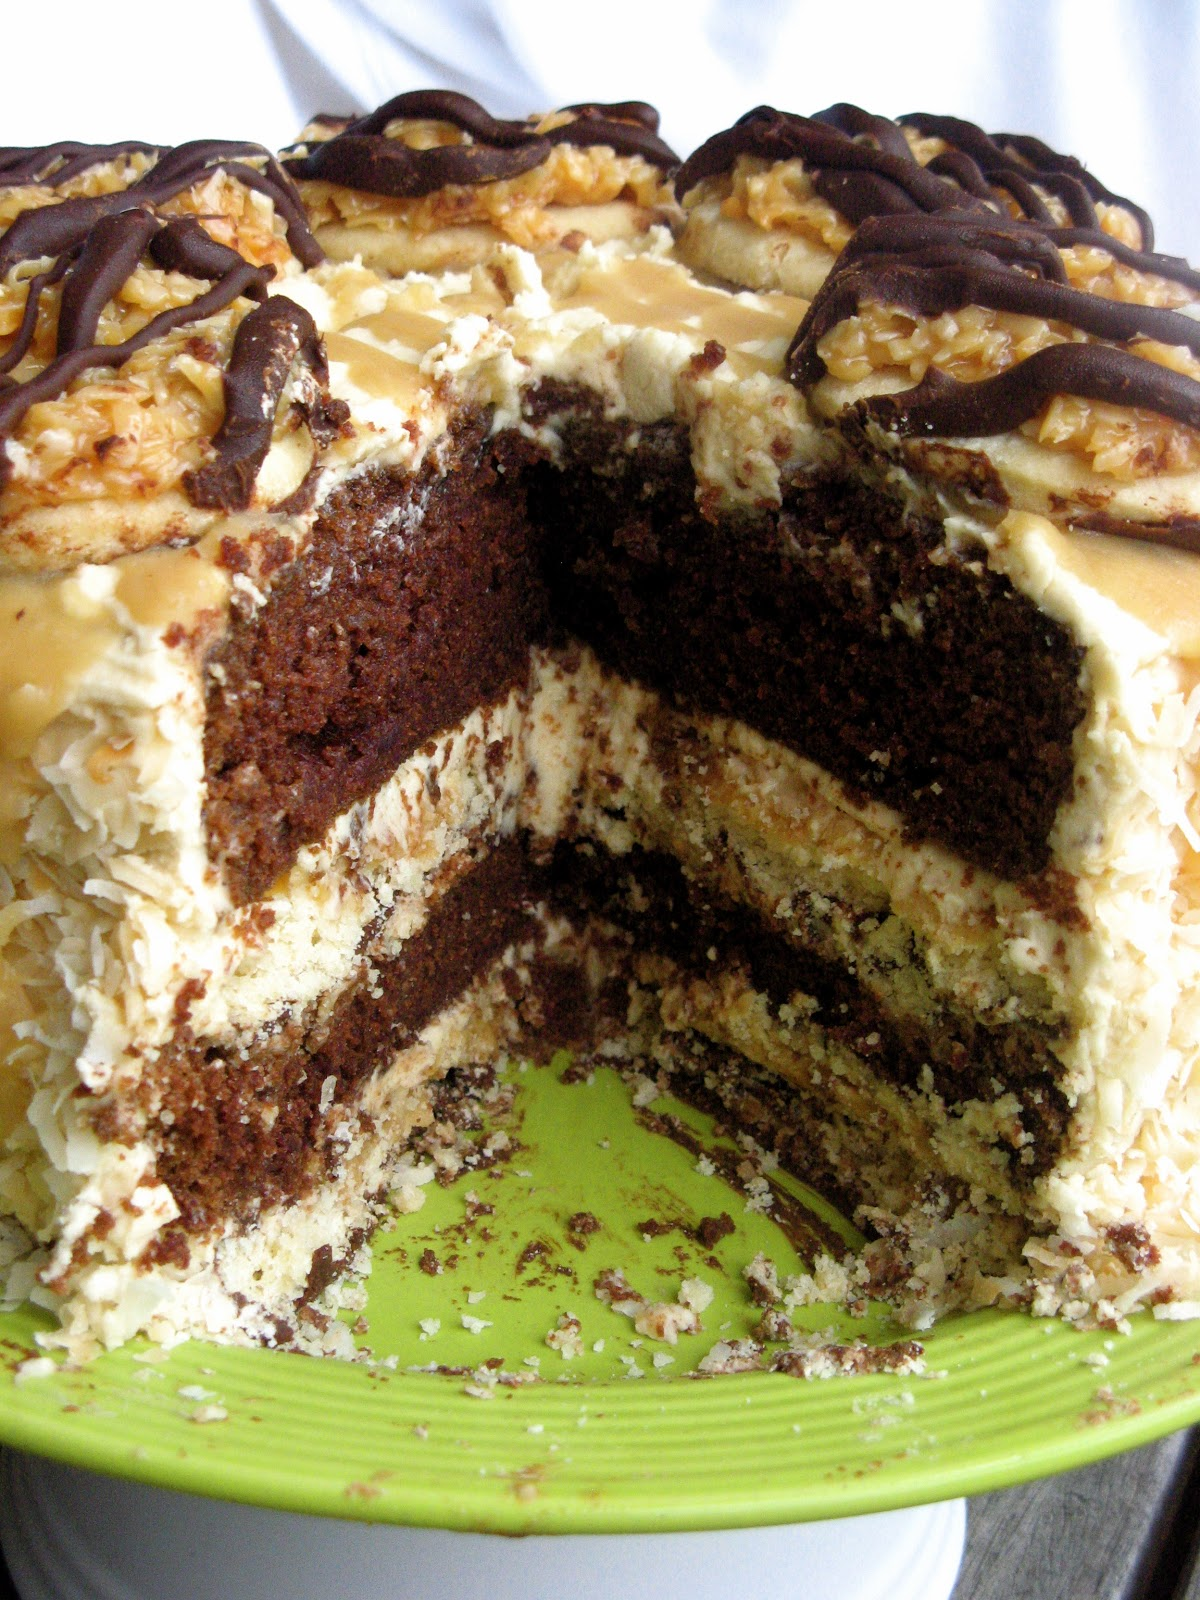 White Family Recipes Samoa Girl Scout Cookie Layer Cake